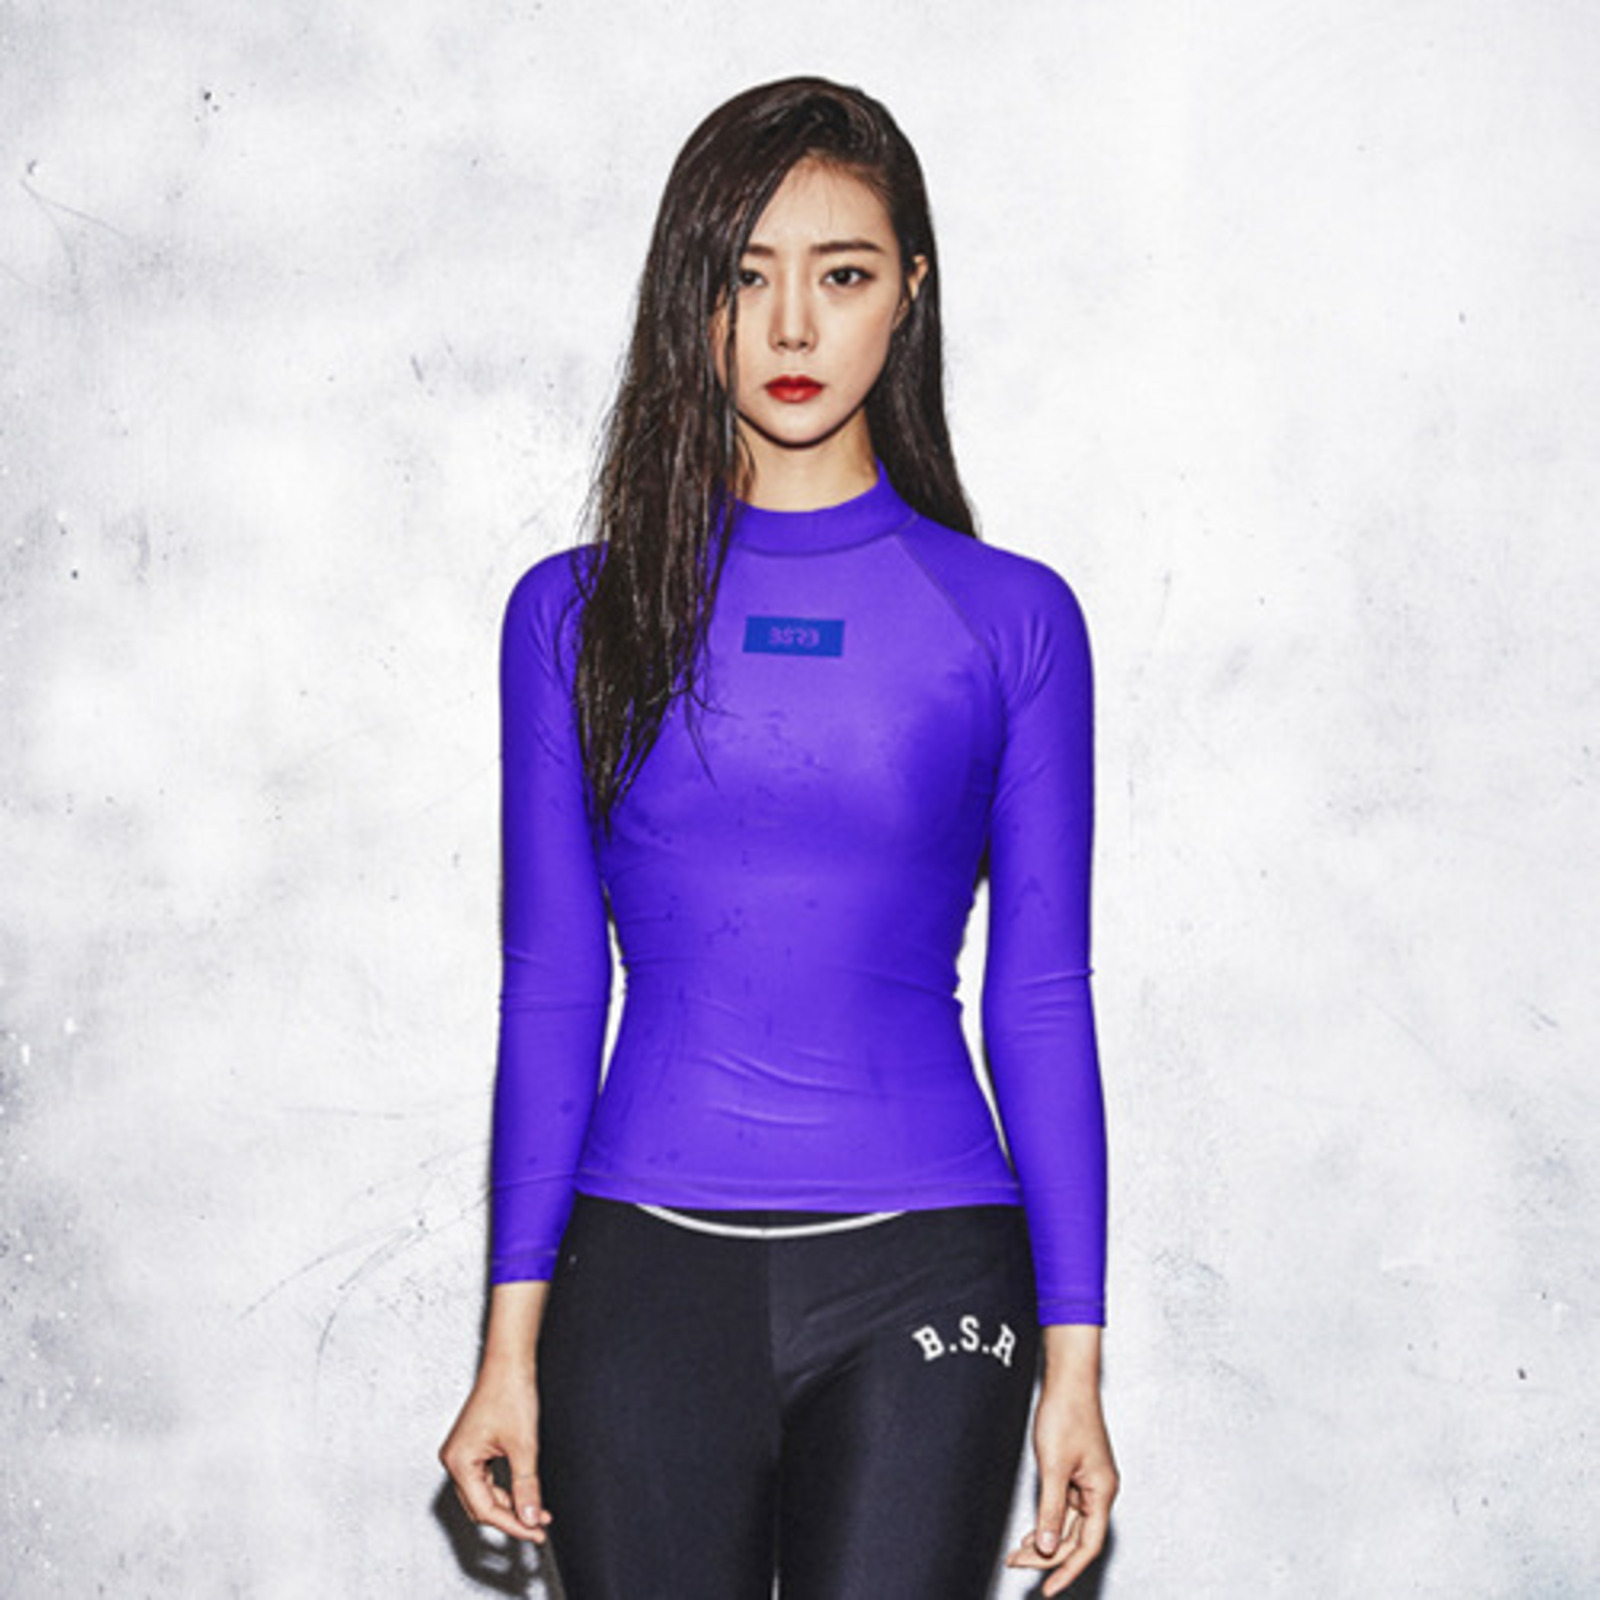 BSRB BOX BR RASH GUARD PURPLE